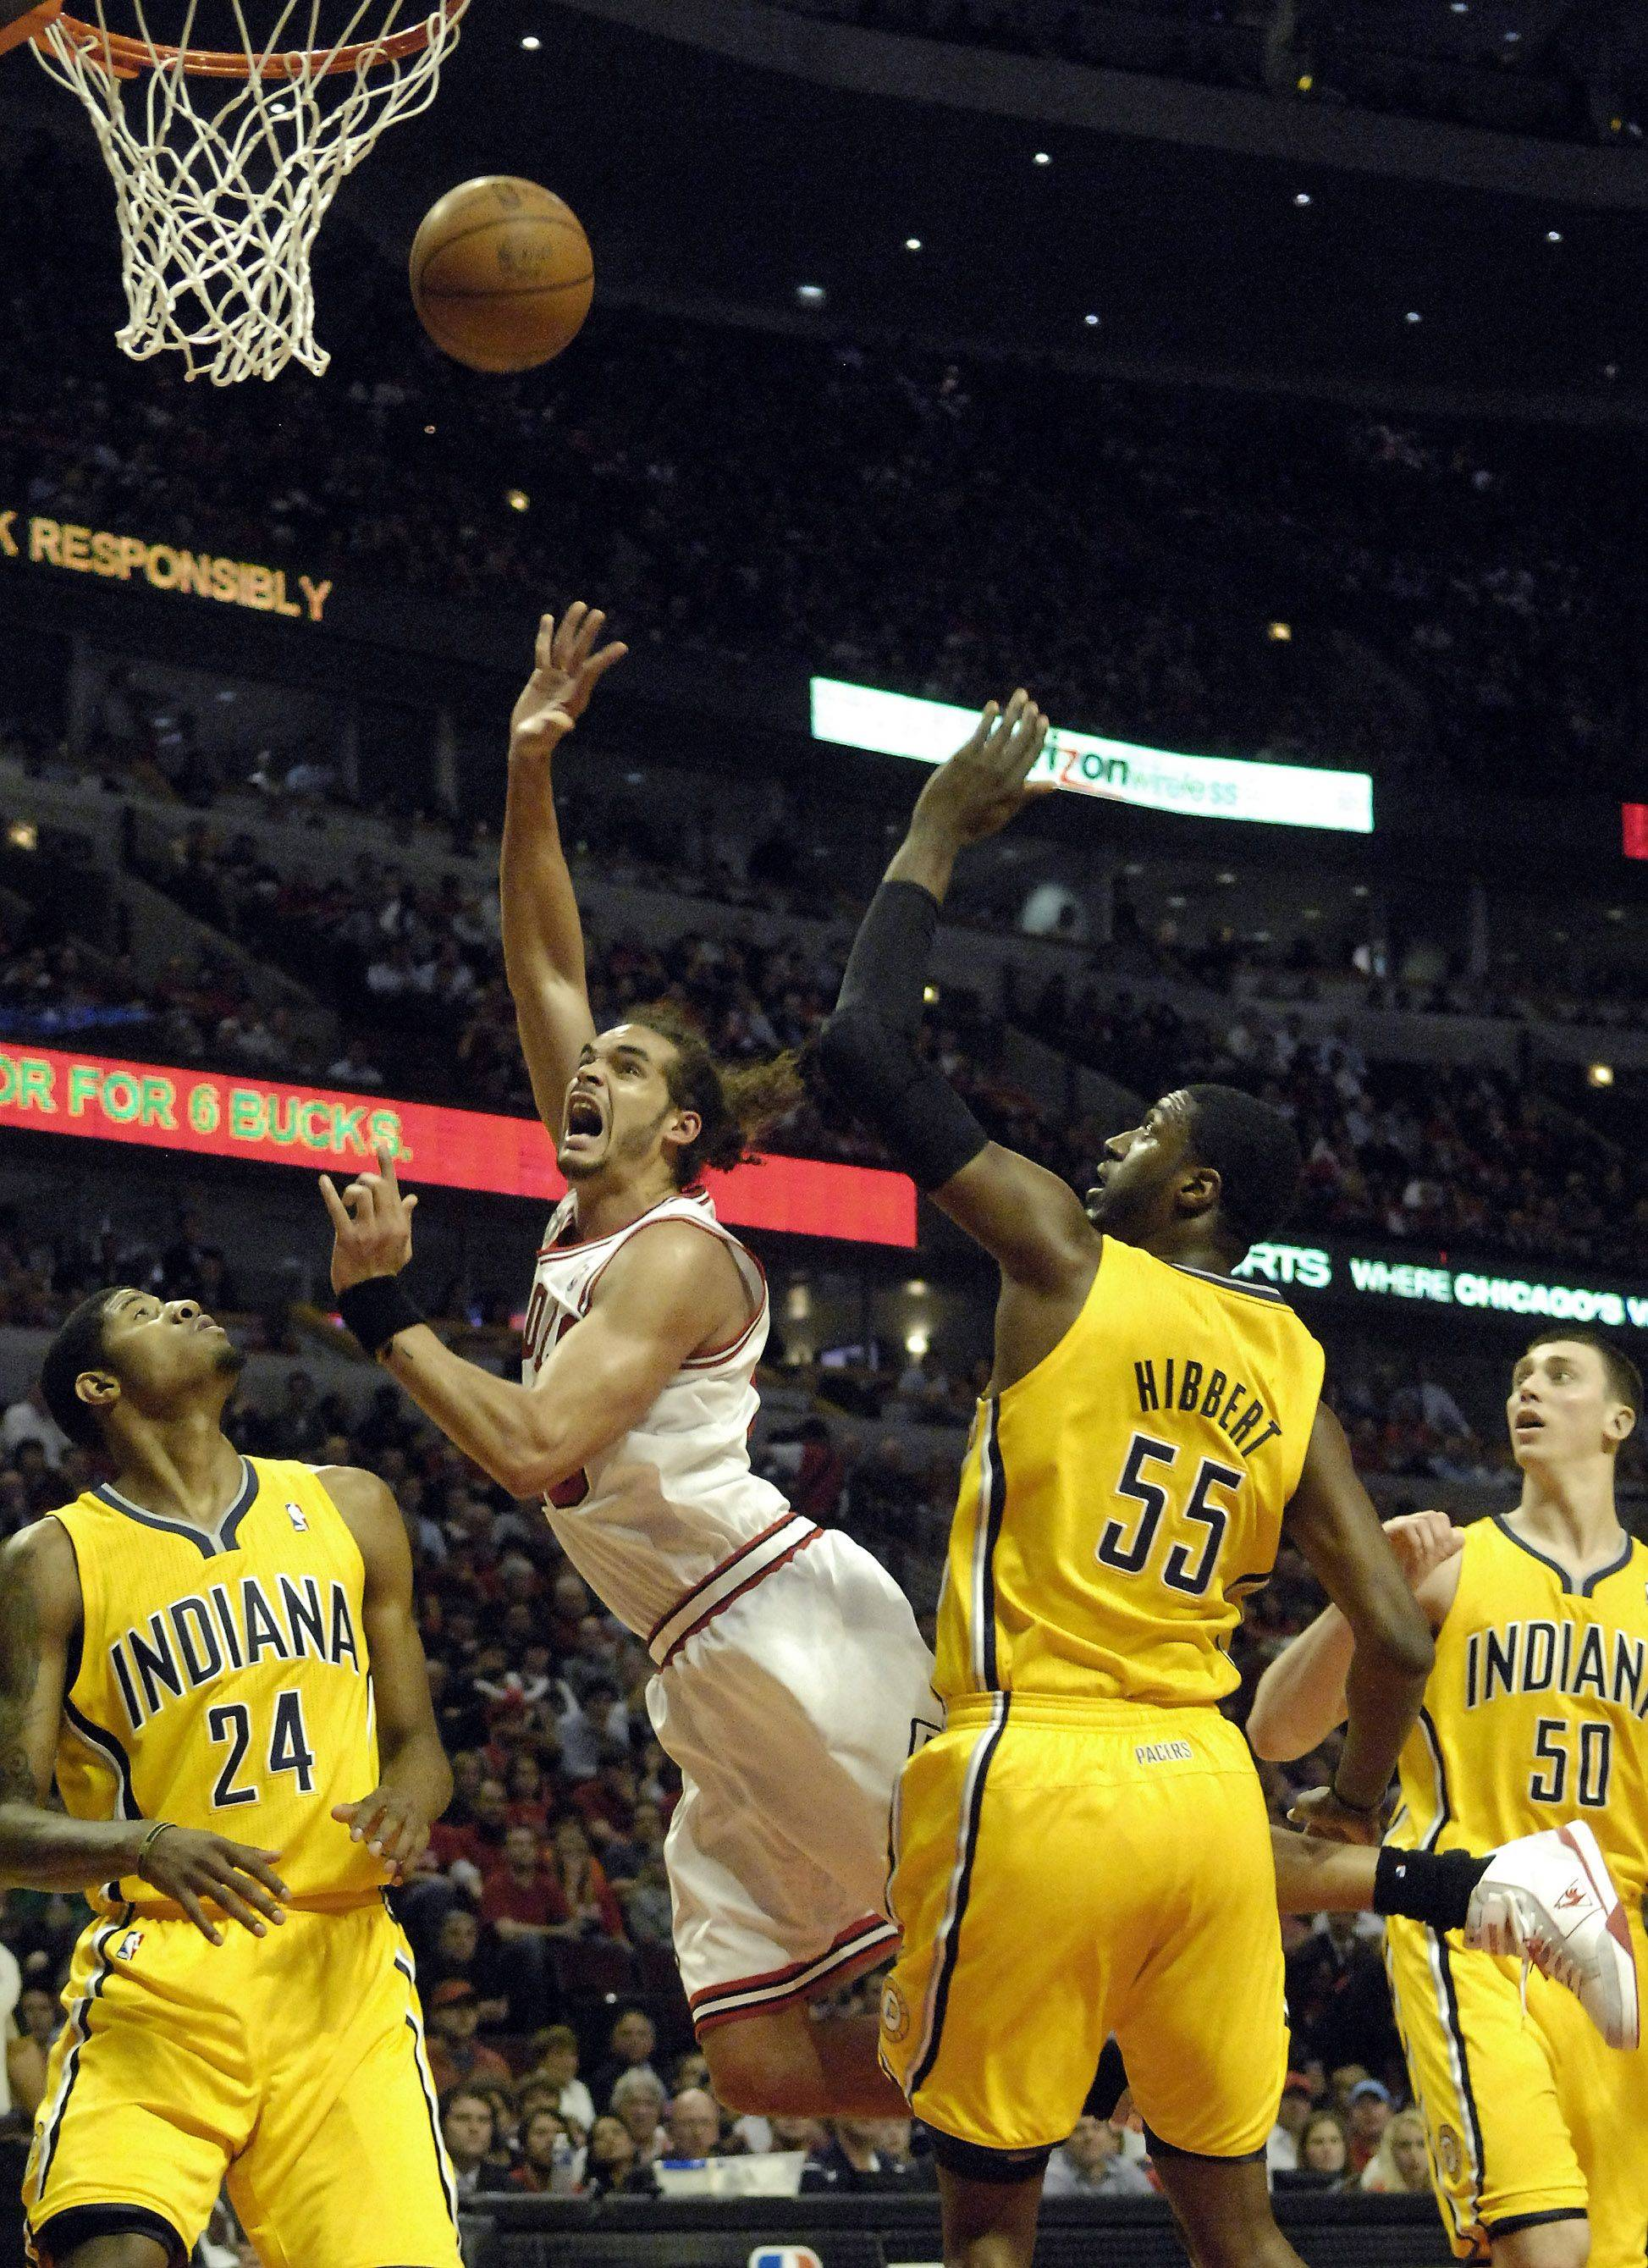 Center Joakim Noah puts up an off-balance shot in a lane full of Pacers during game 5 in Chicago Tuesday.